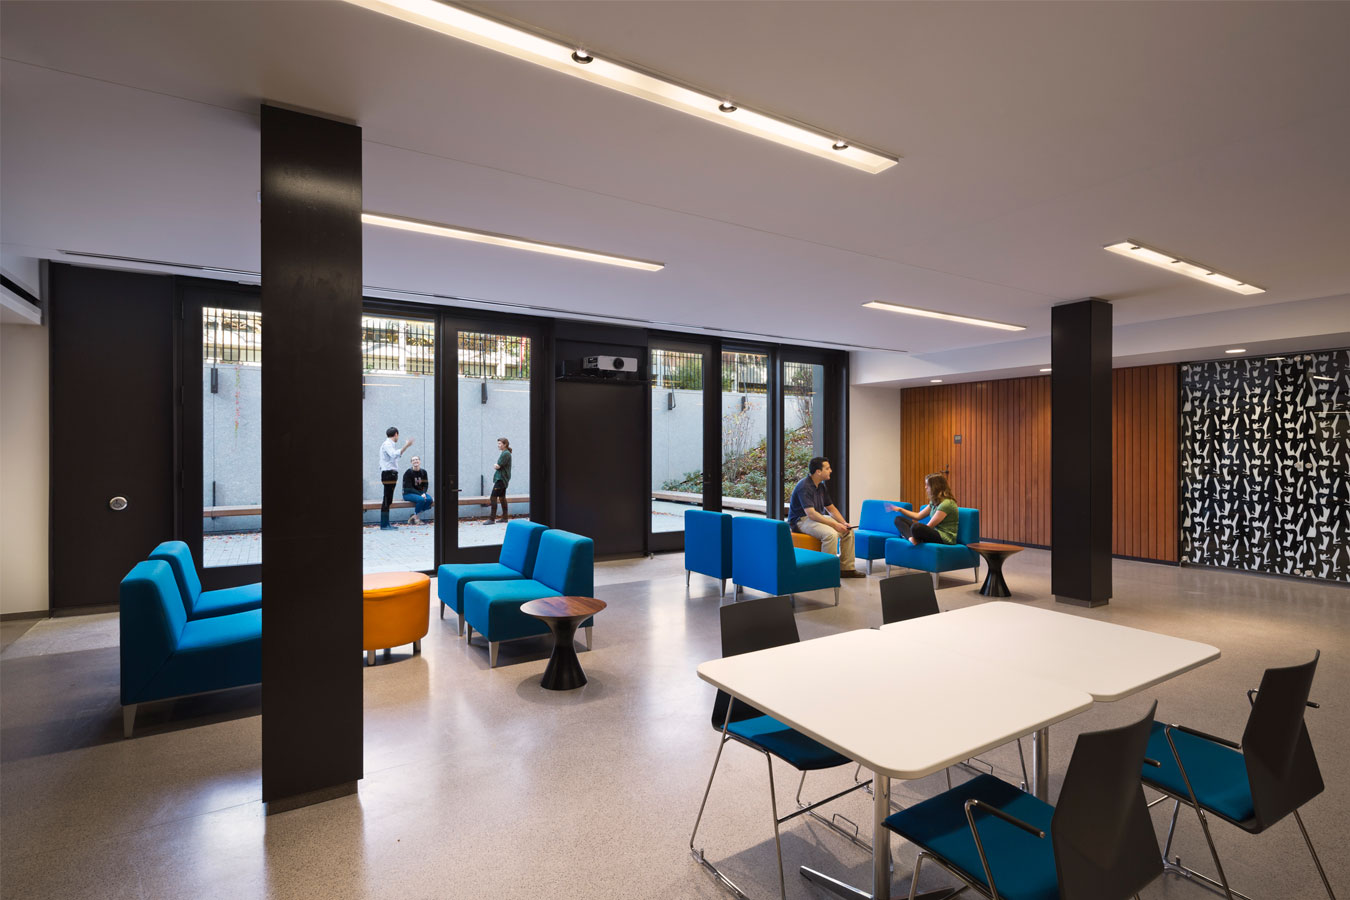 <p>A new community room in the basement opens to the terrace. <br> <br /><small>© Michael Moran/OTTO</small></p>